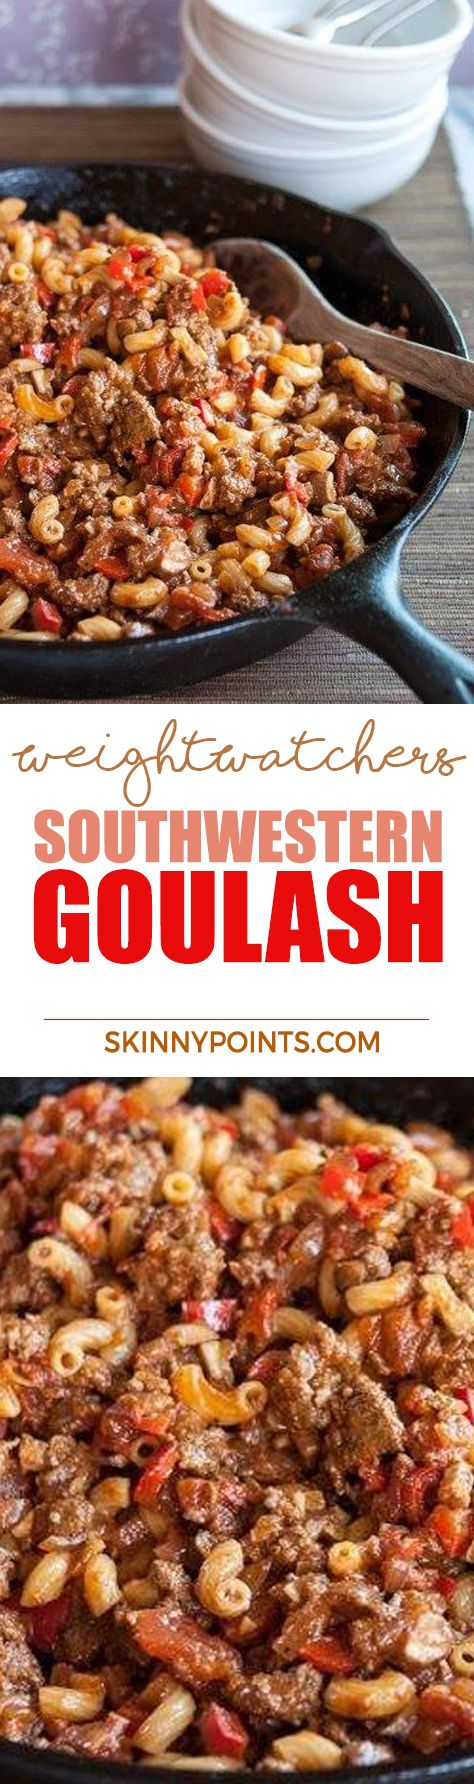 Southwestern Goulash Recipe With Only 5 Weight Watchers Smart Points